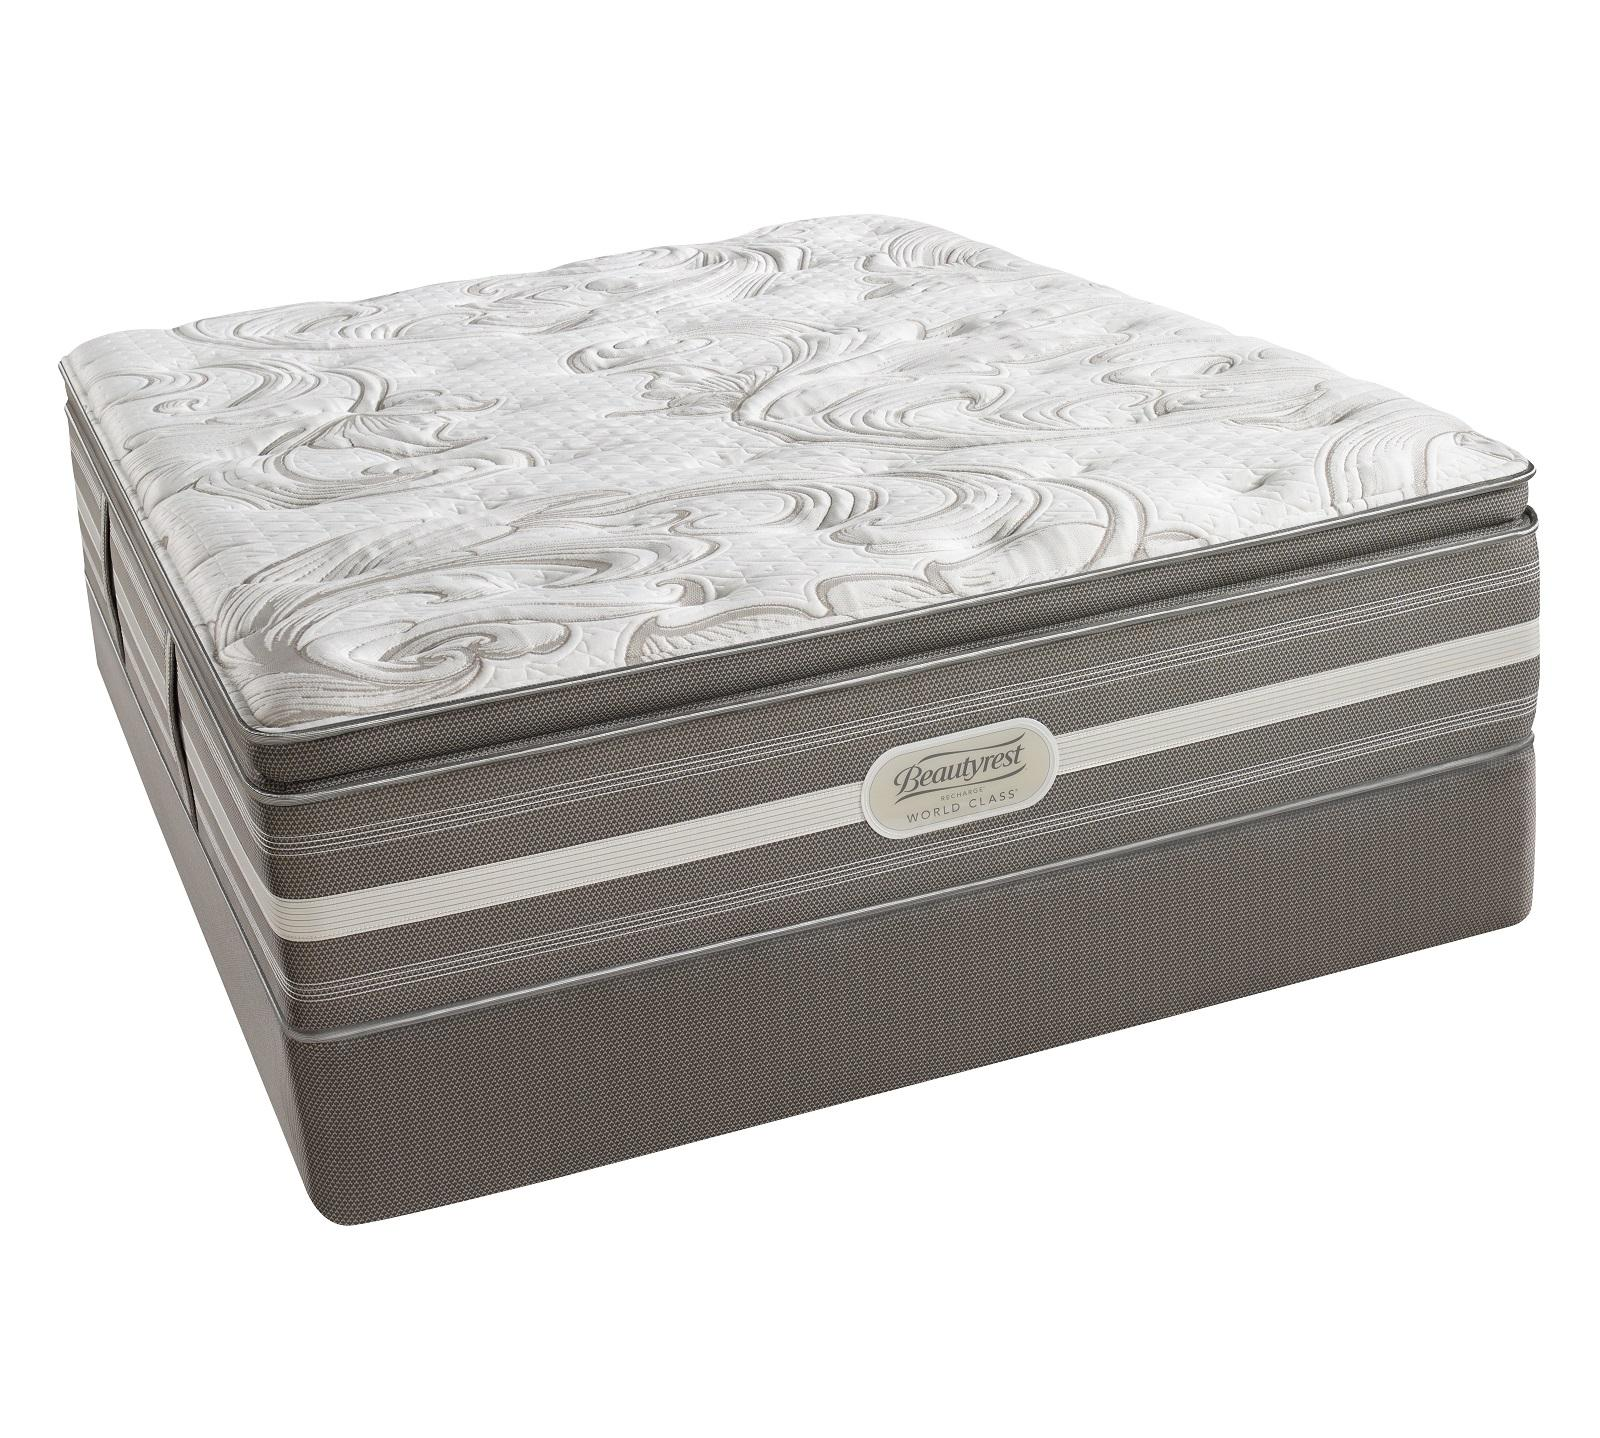 Simmons Beautyrest World Class Providence Plush Pillowtop